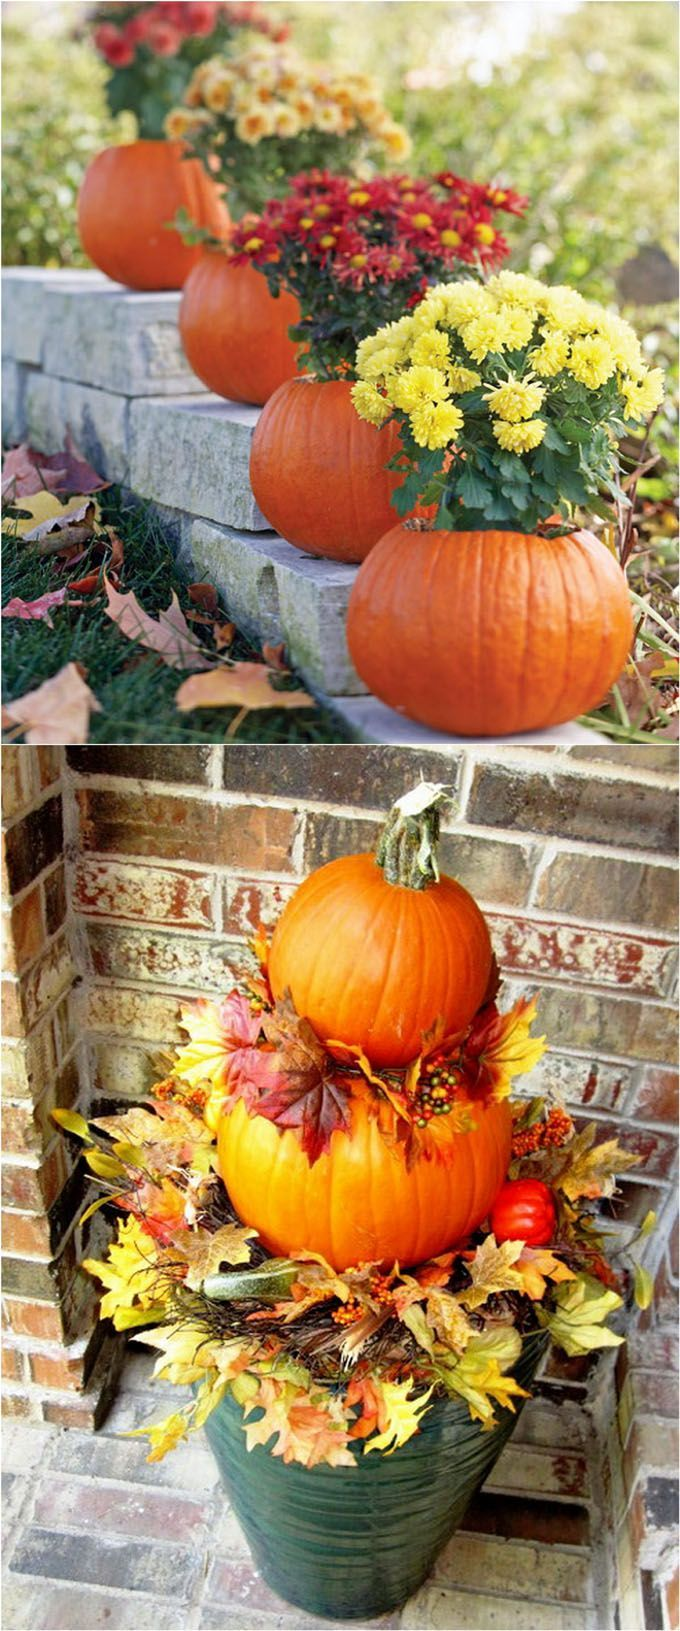 25 Splendid DIY Fall Outdoor Decorations | Fall yard decor ...